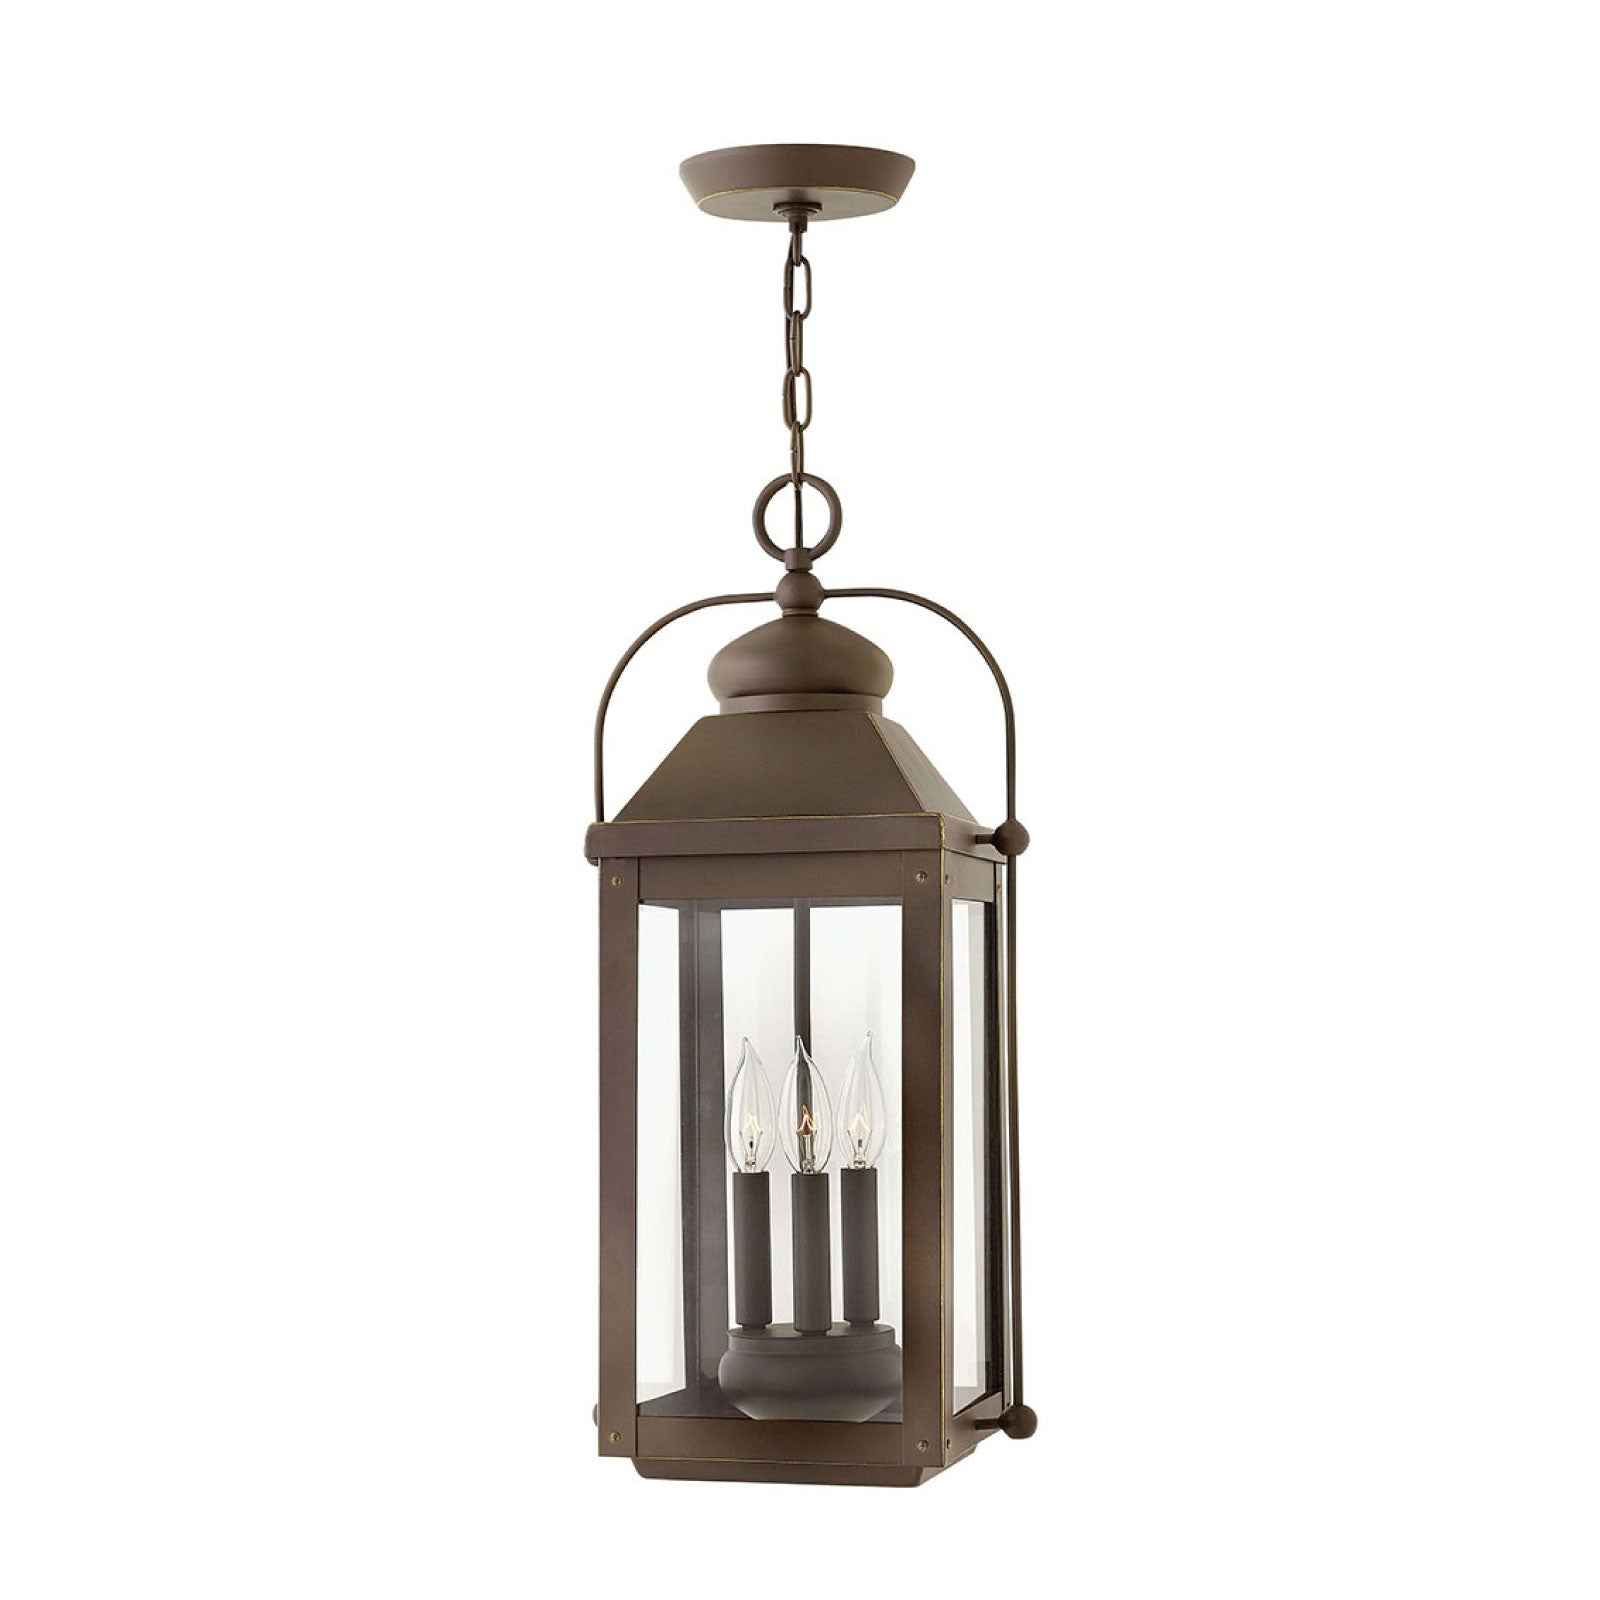 Lincoln Hanging Lantern in Oiled Bronze